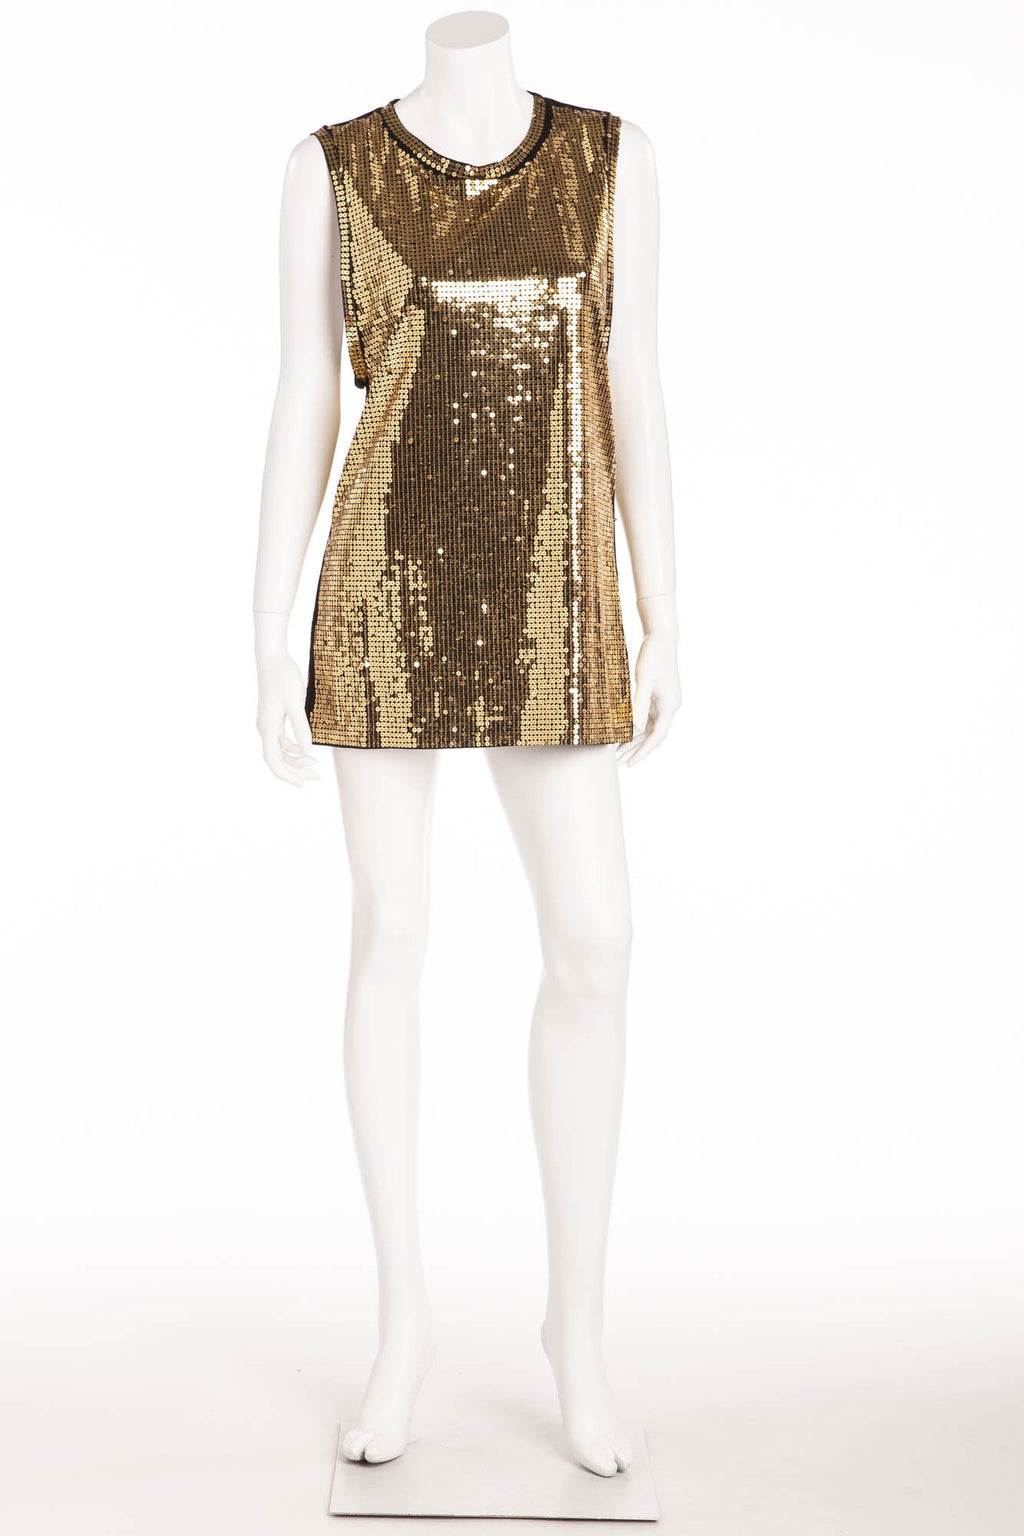 Balmain - Gold Sequin Sleeveless Tank Top - FR 40